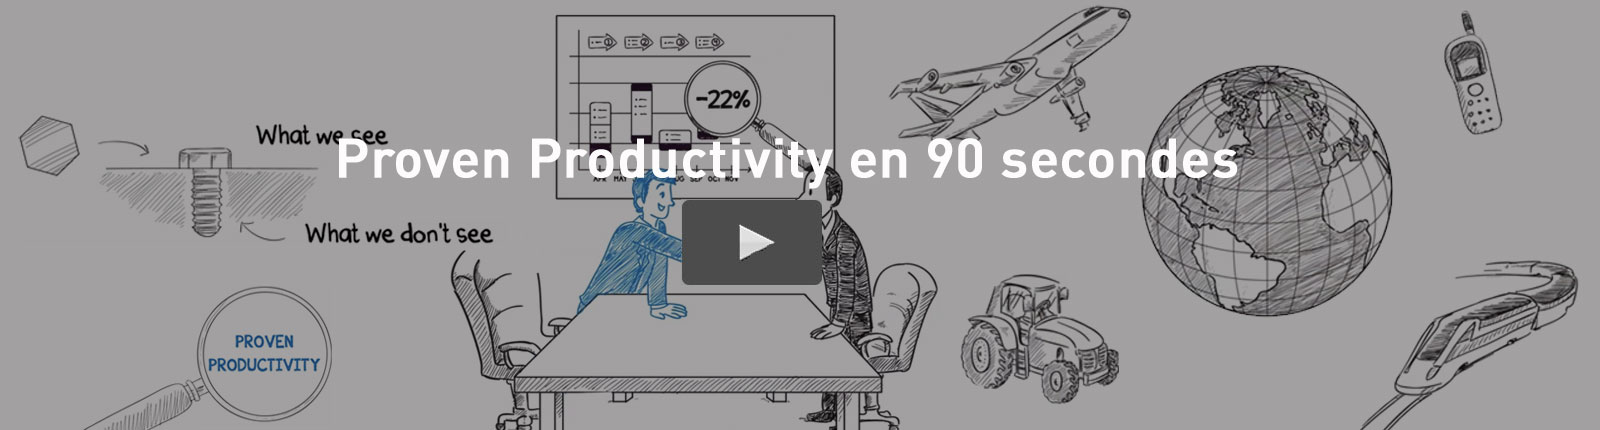 proven productivity en 90 secondes